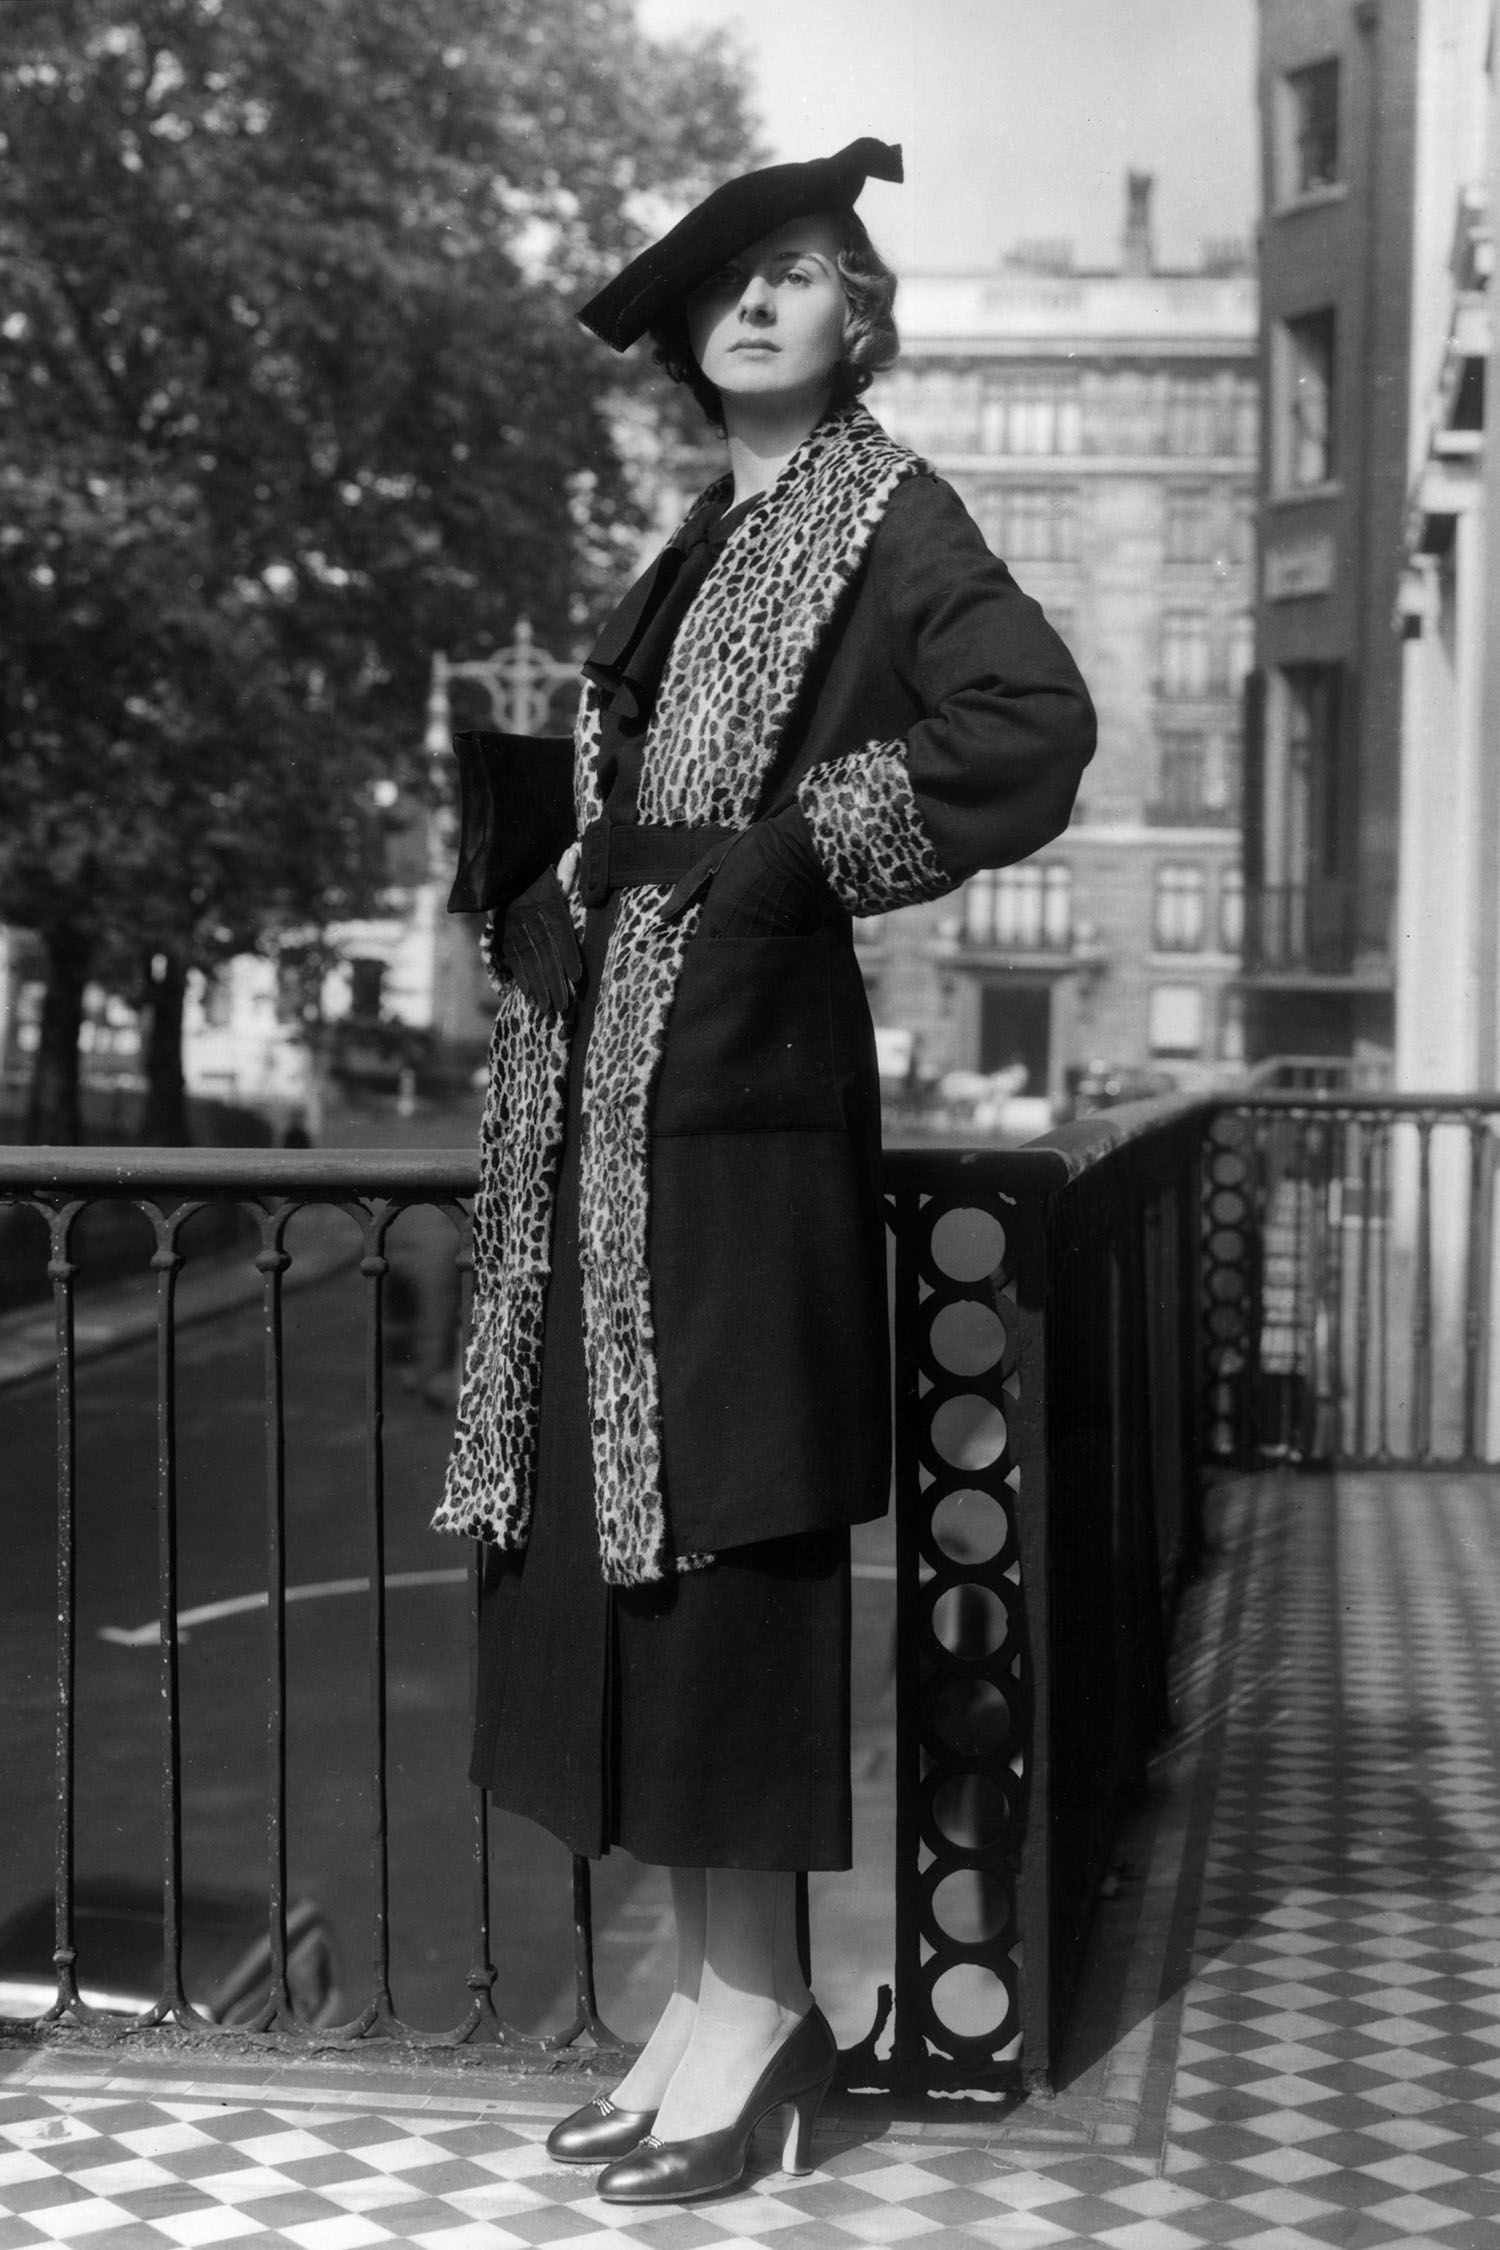 Model wears a long and lean coat from the '30s with leopard fur accents. Photo courtesy of Harper's Bazaar.